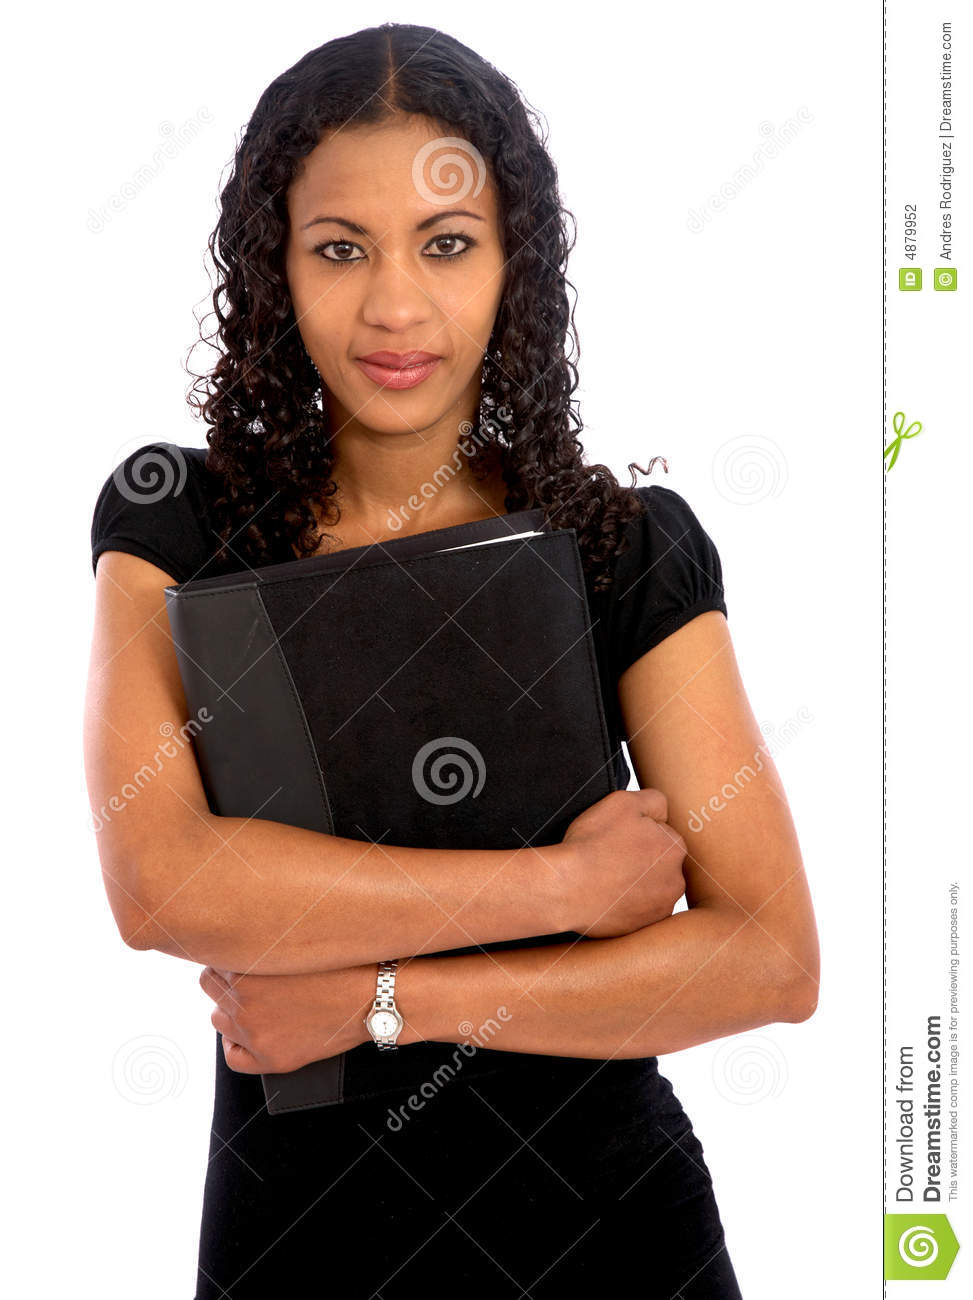 black-business-woman-4879952.jpg